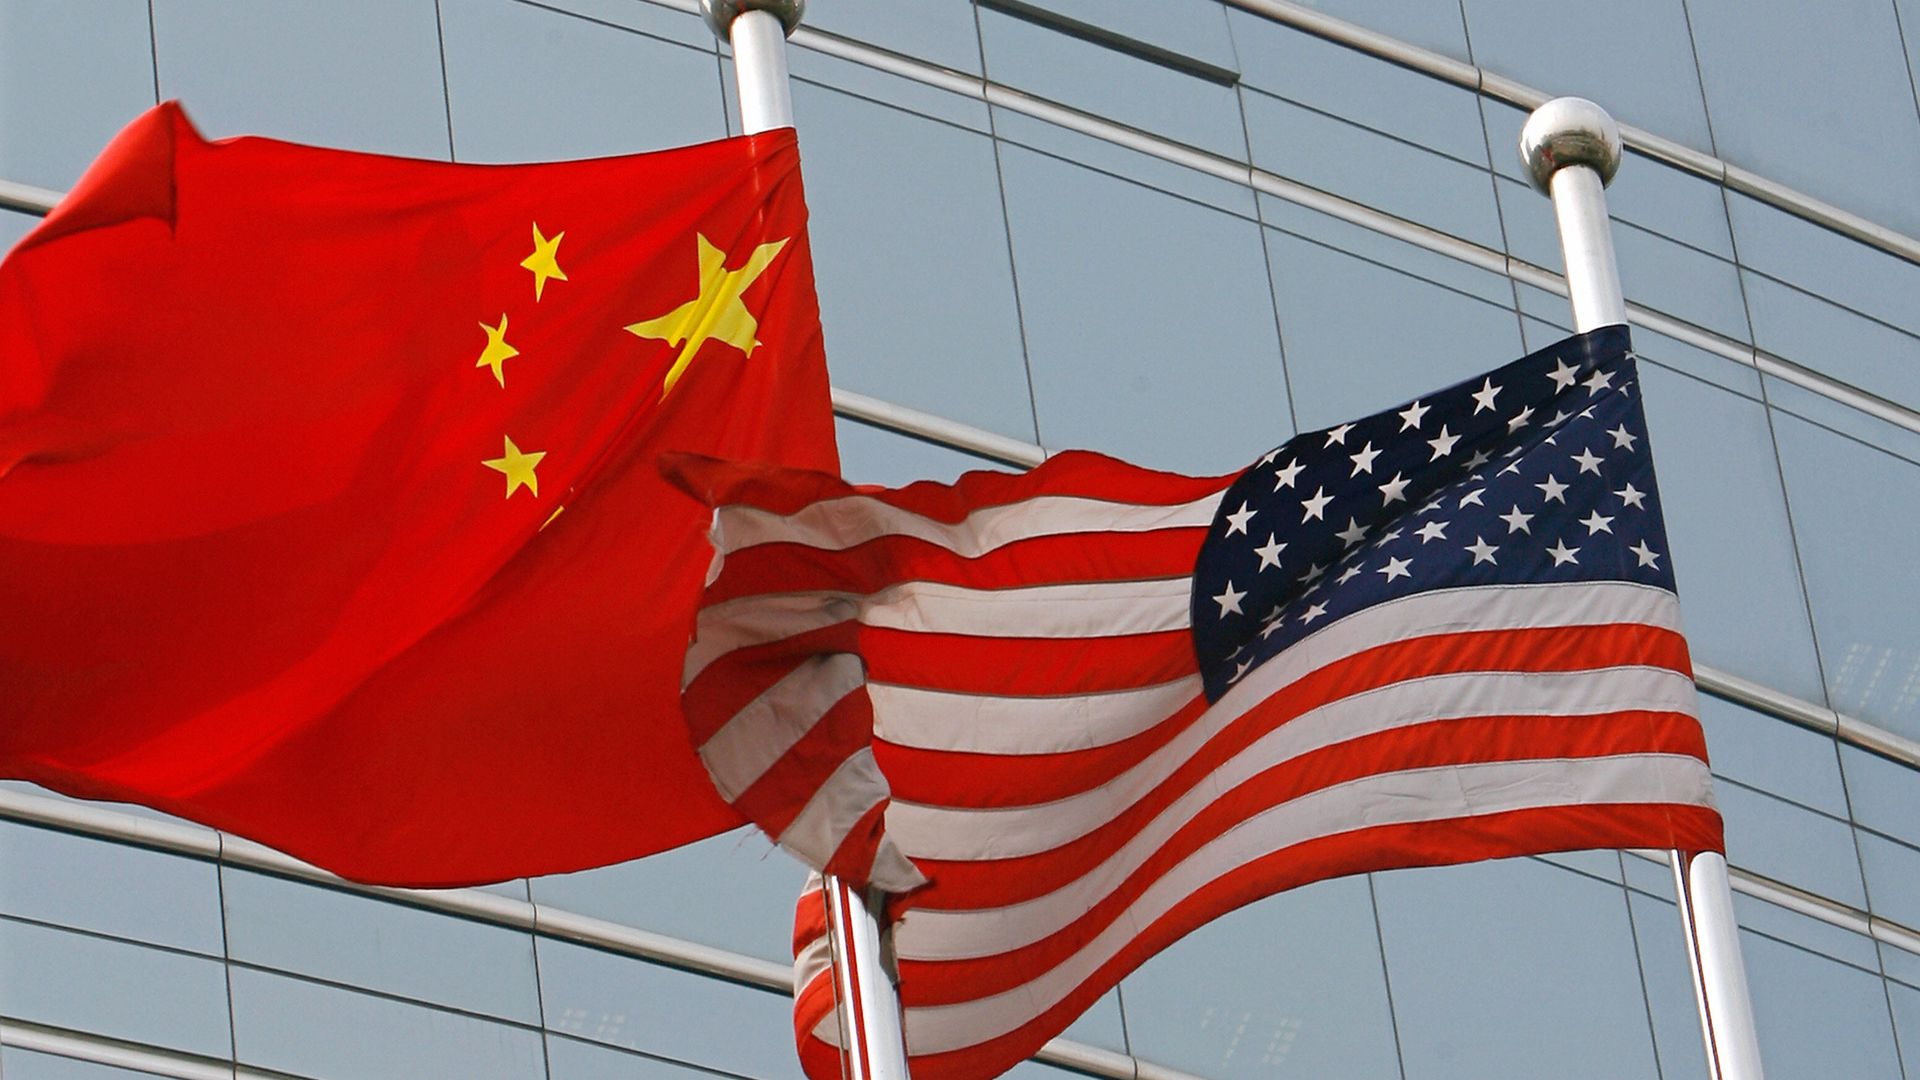 Chinese and American flags waving next to each other